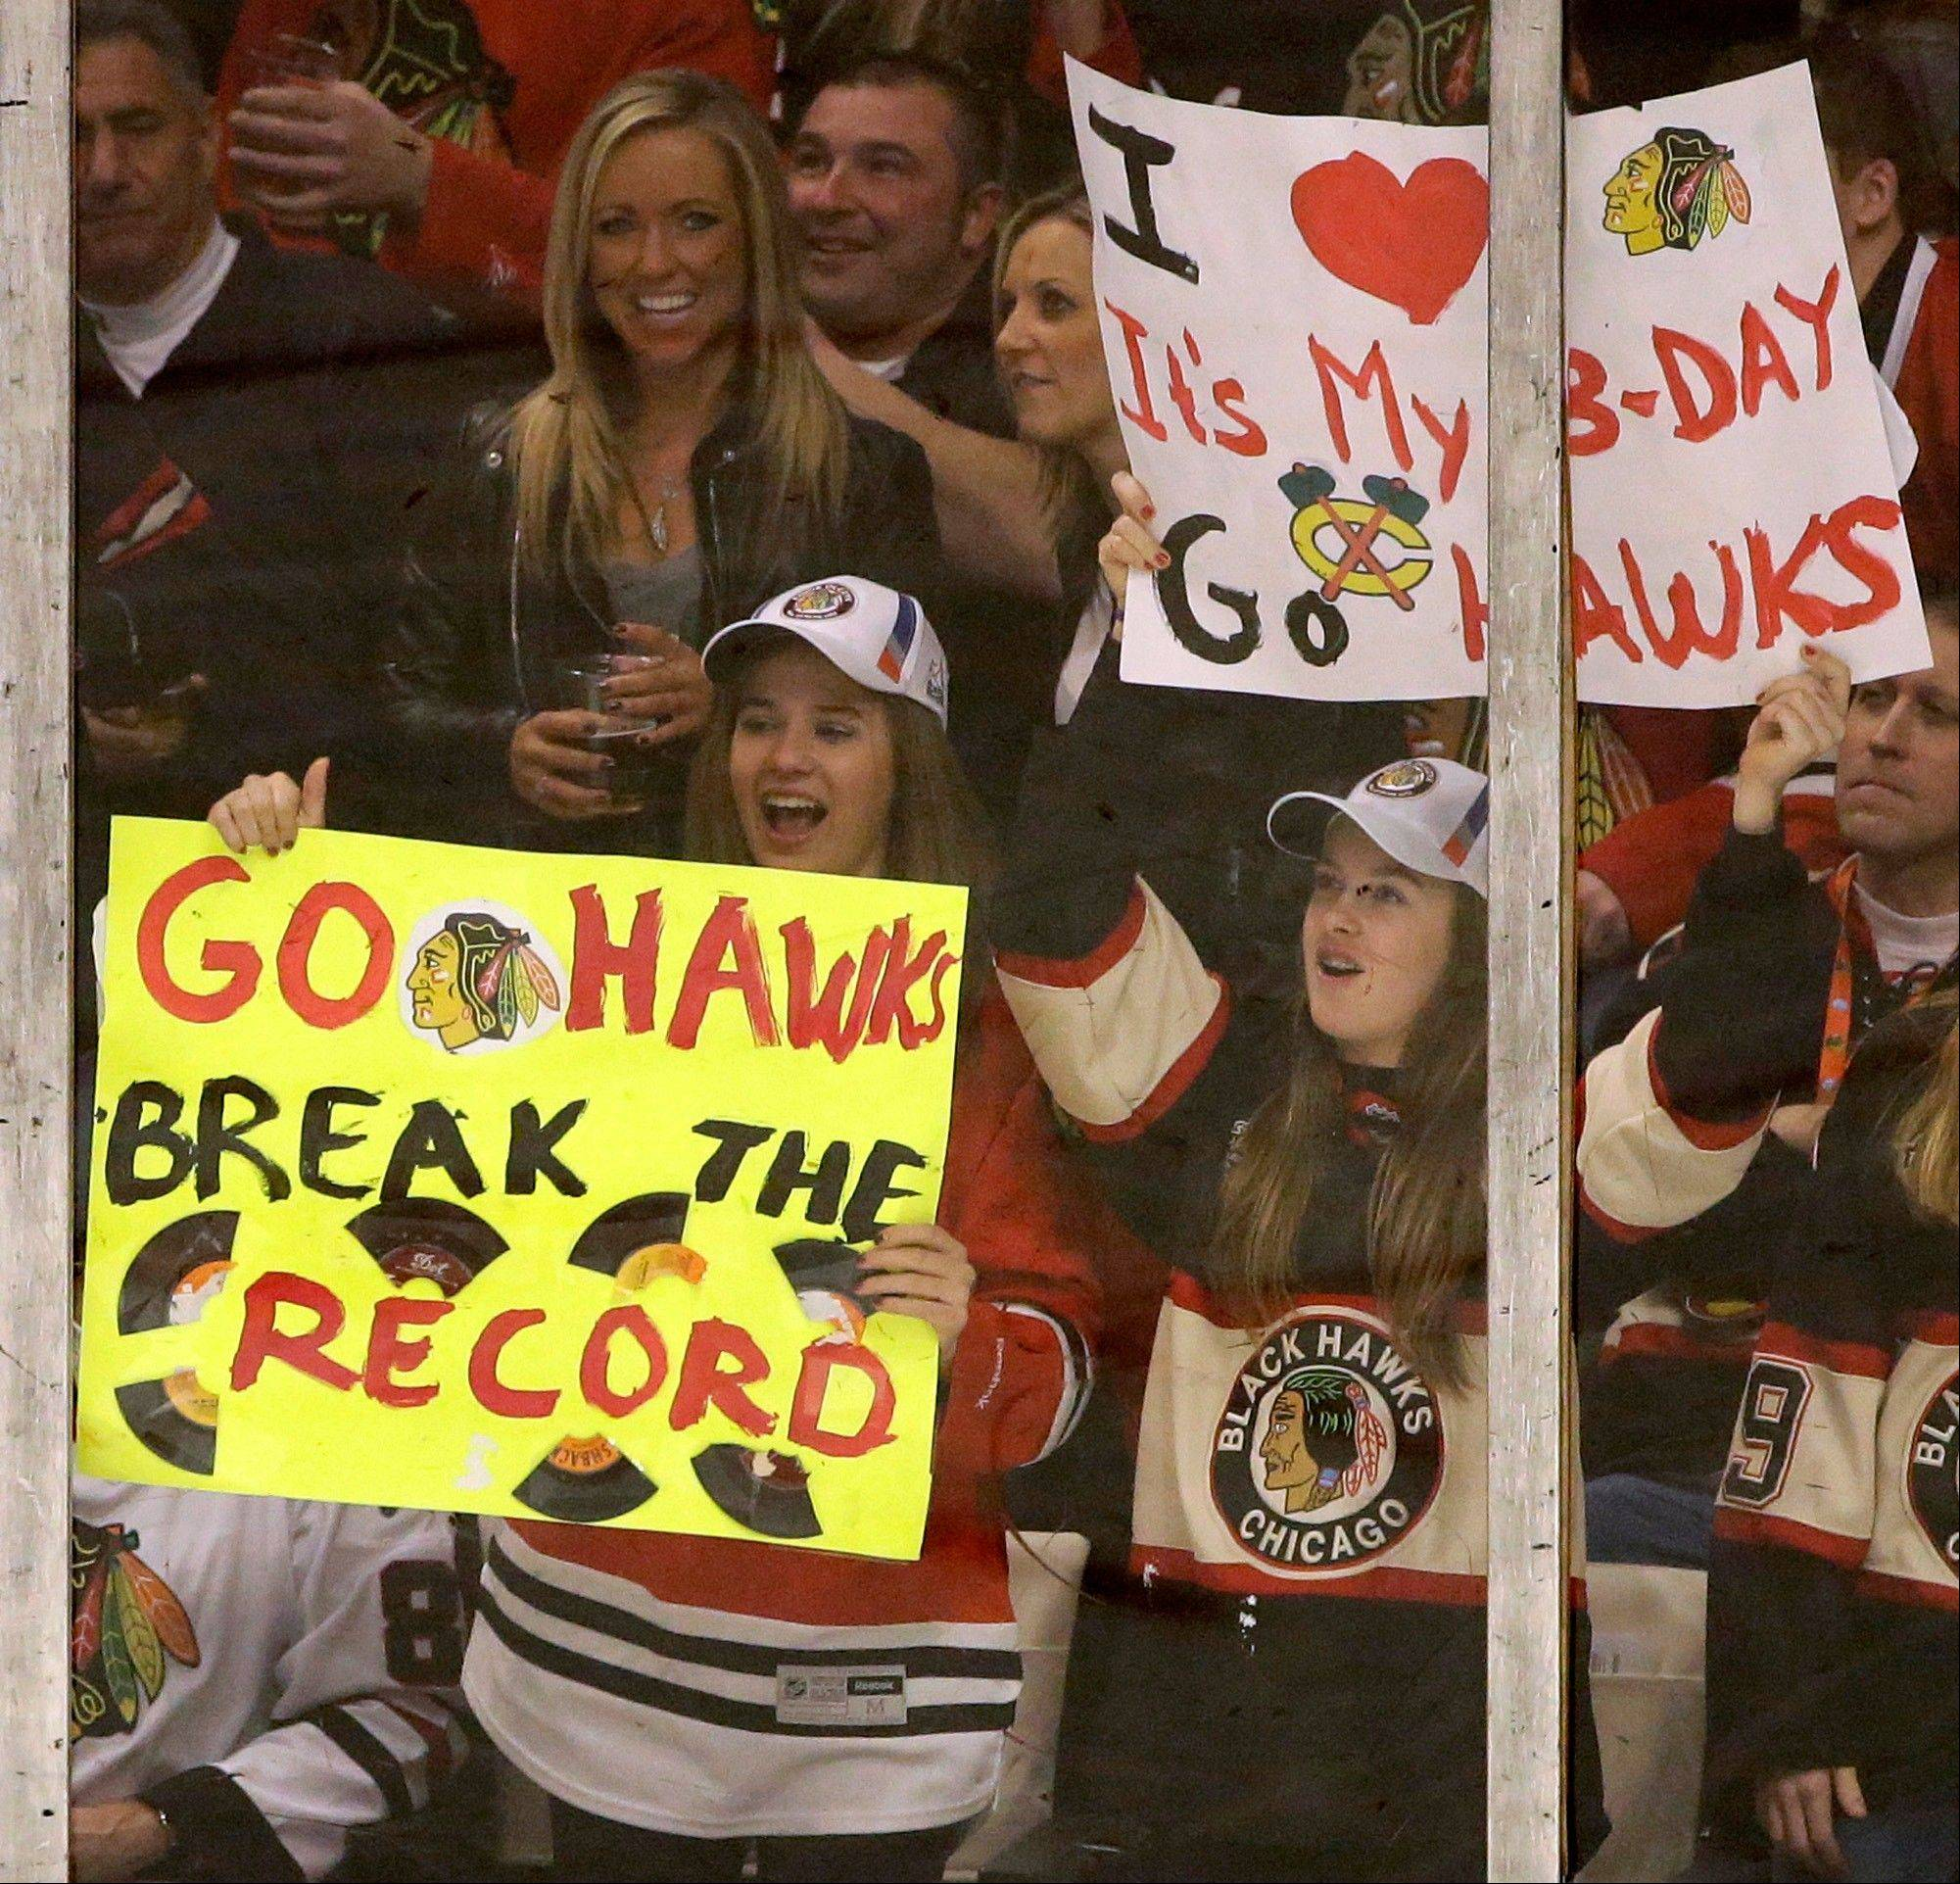 Chicago Blackhawks fans hold signs during thethird period of an NHL hockey game between the Chicago Blackhawks and the San Jose Sharks in Chicago, Friday, Feb. 22, 2013. The Blackhawks won 2-1.